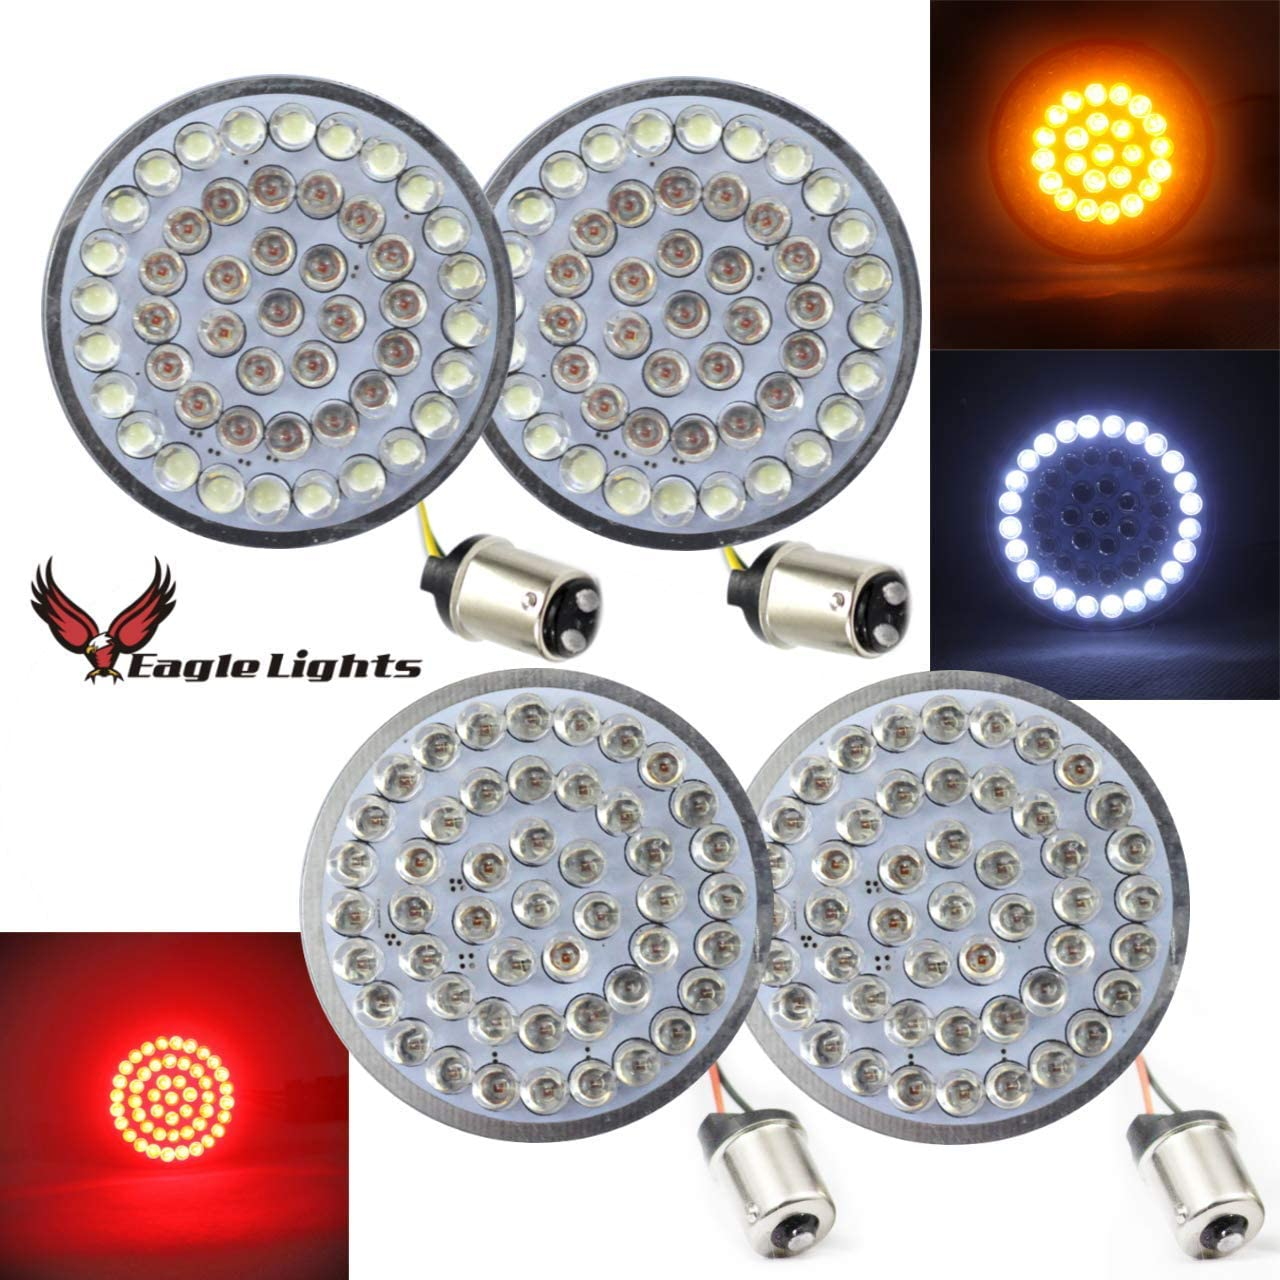 1157 1156 Eagle Lights 2-Inch LED Turn Signal Kit for Harley Davidson Front and Rear Red LED Turn Signal Kit Add Smoked Lenses